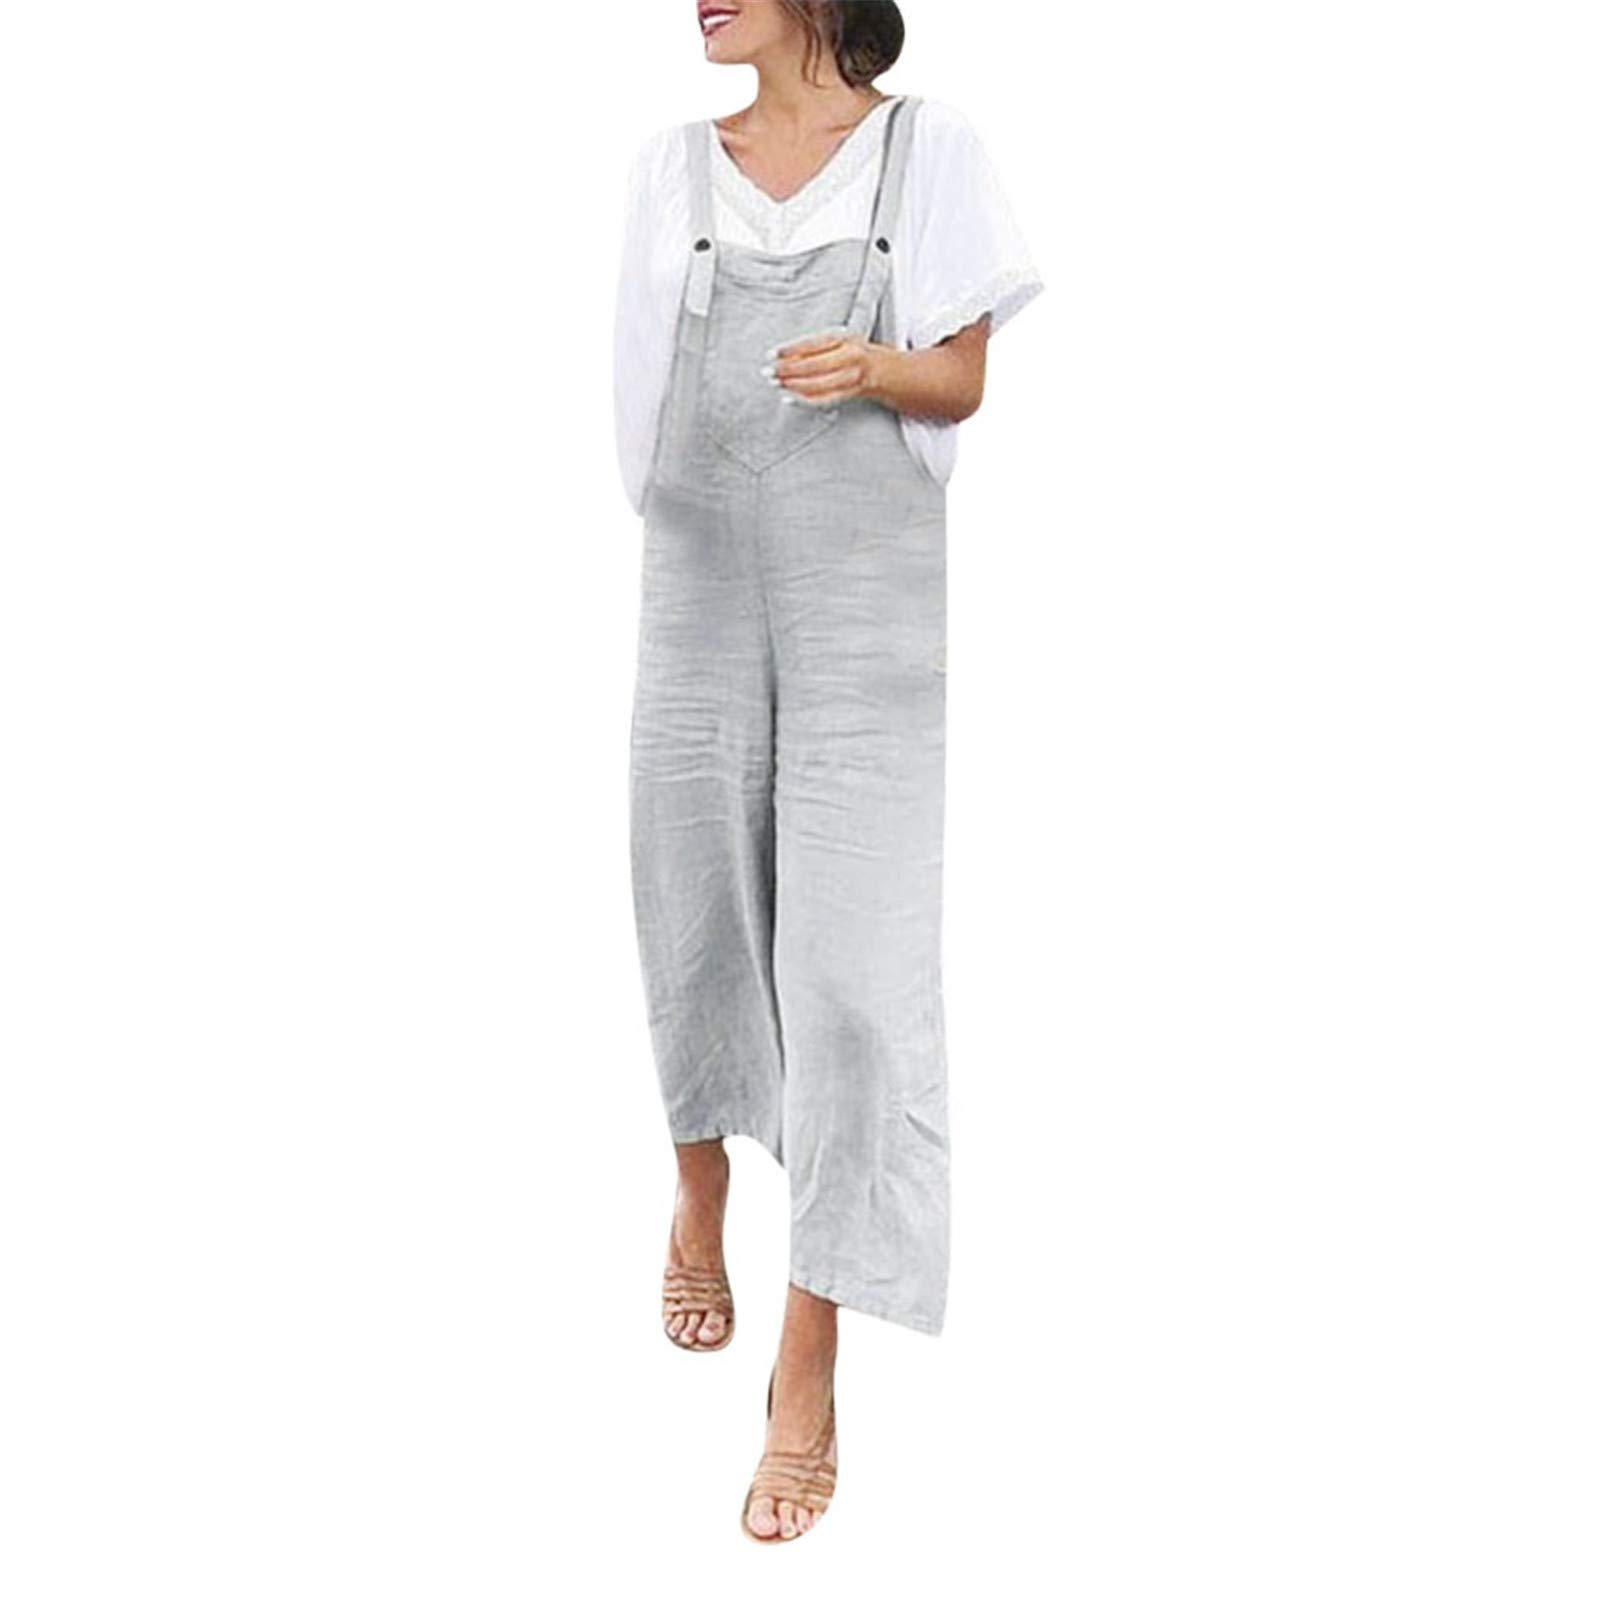 Thenxin Womens Casual Jumpsuits Overalls Solid Color Baggy Bib Pants Plus Size Wide Leg Rompers (Gray,XXXL)